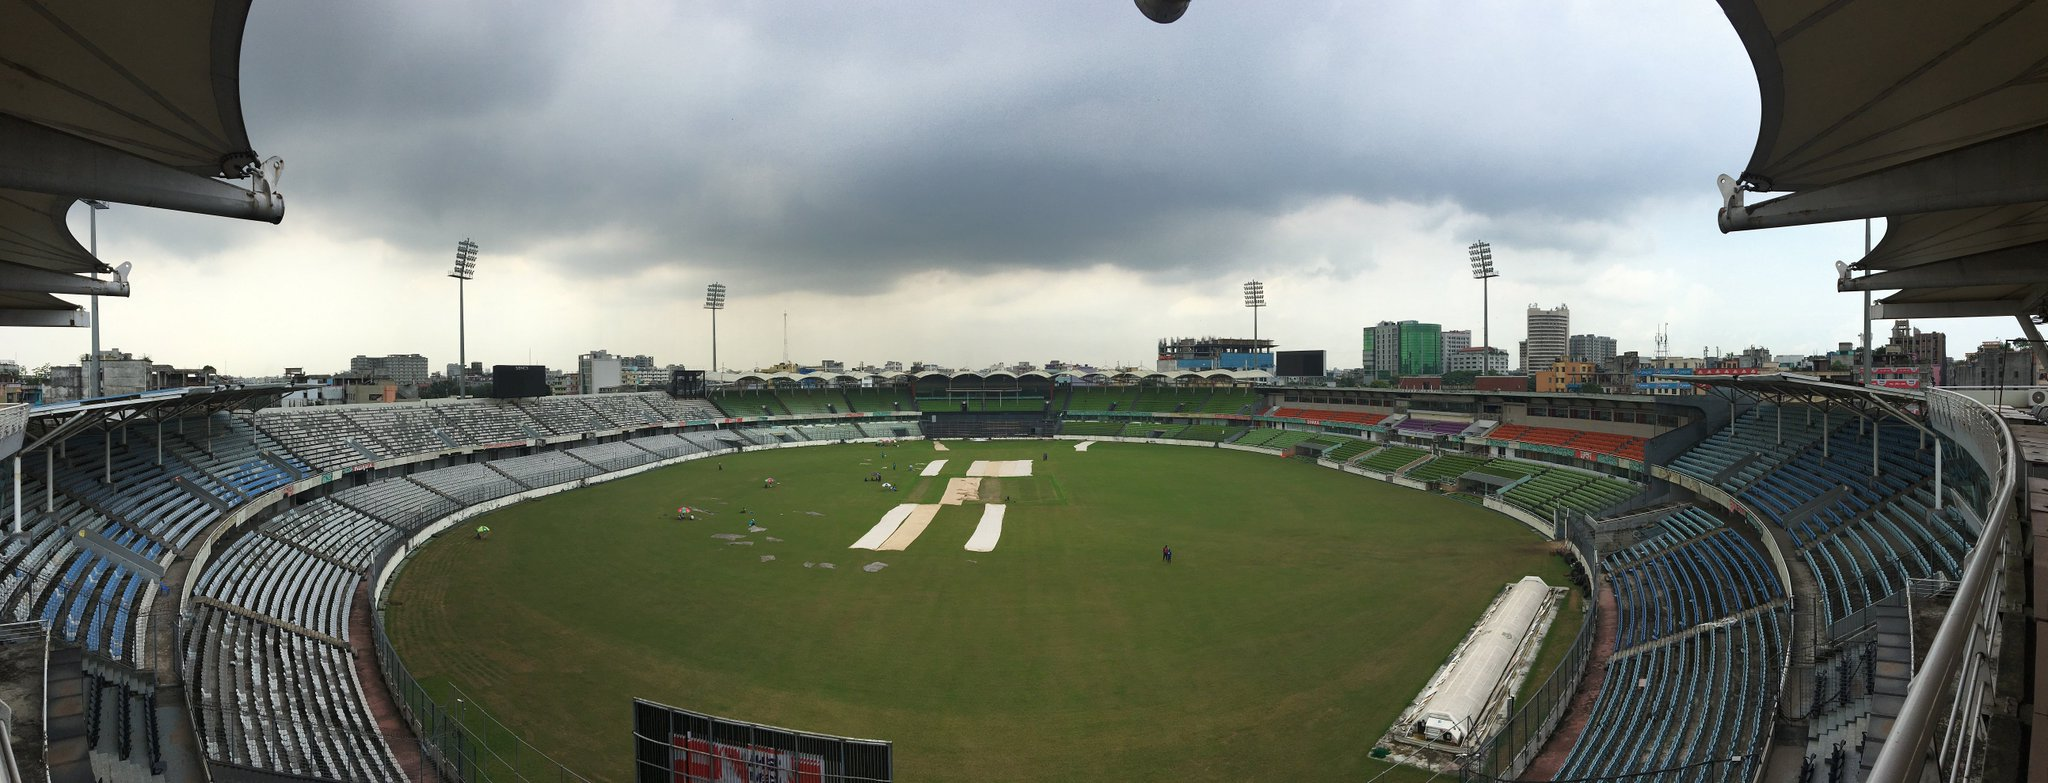 The venue for the first #BANvAUS Test starting Sunday! https://t.co/xbR7PkStTY